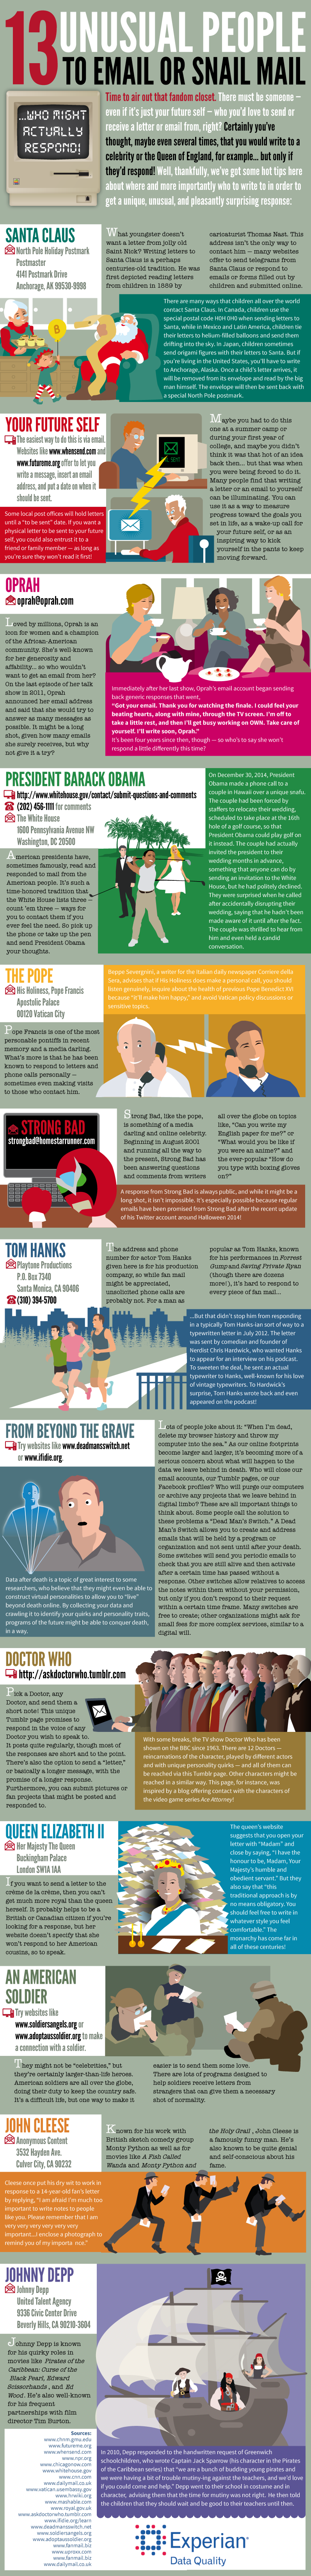 13 Unusual People to Email or Snail Mail ...Who Might Actually Respond! #infographic